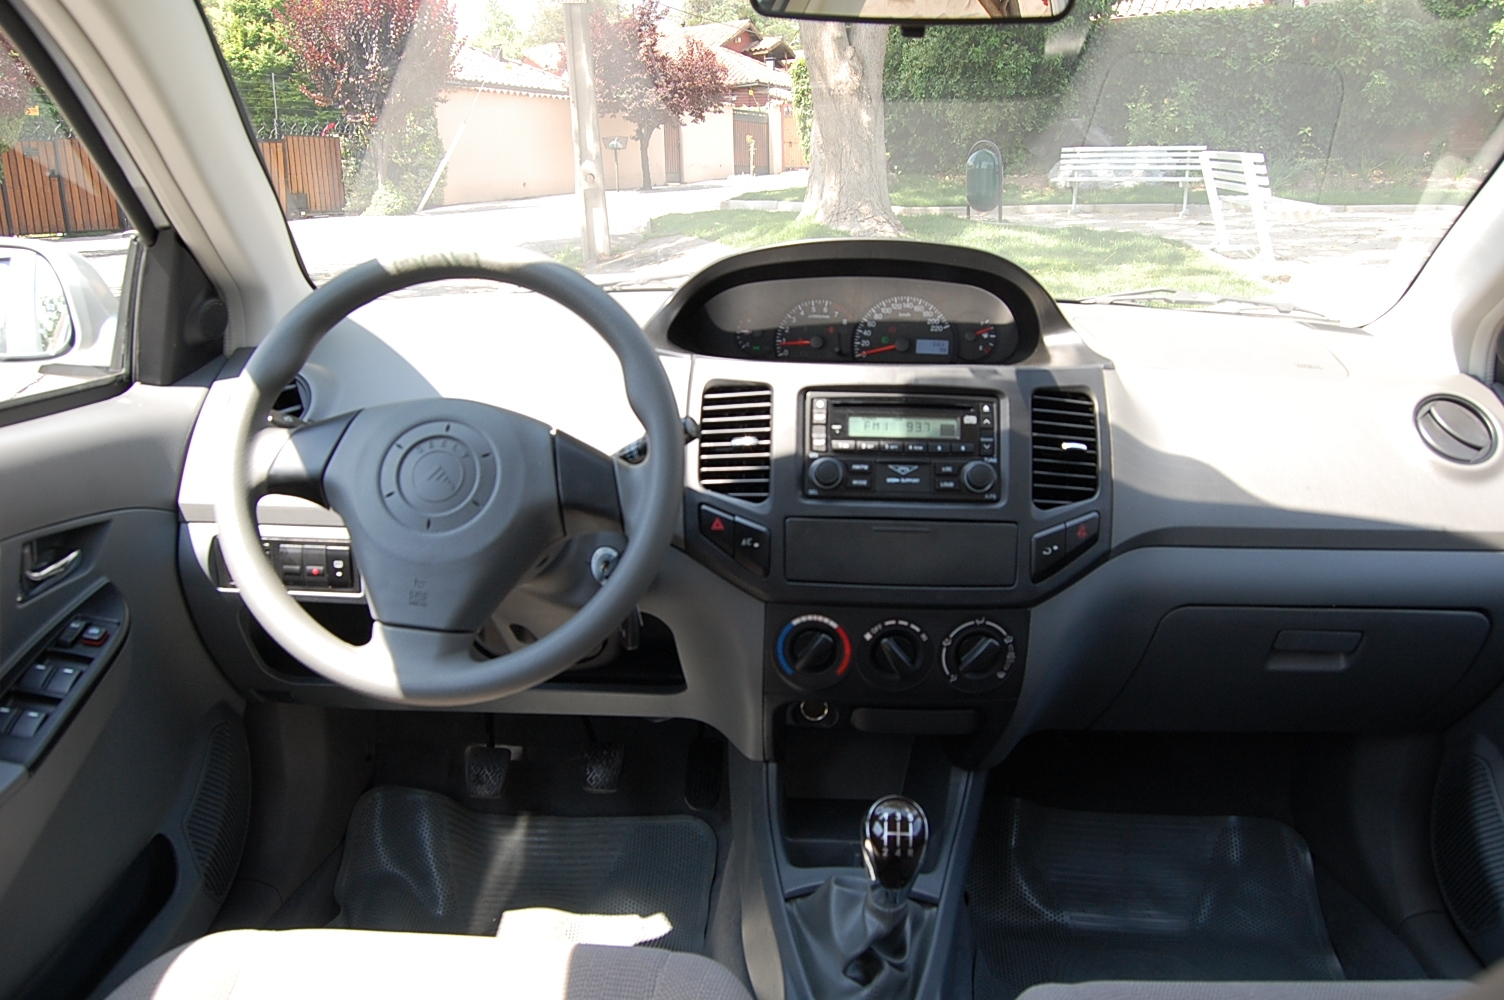 Geely Emgrand 1.5 2010 photo - 11